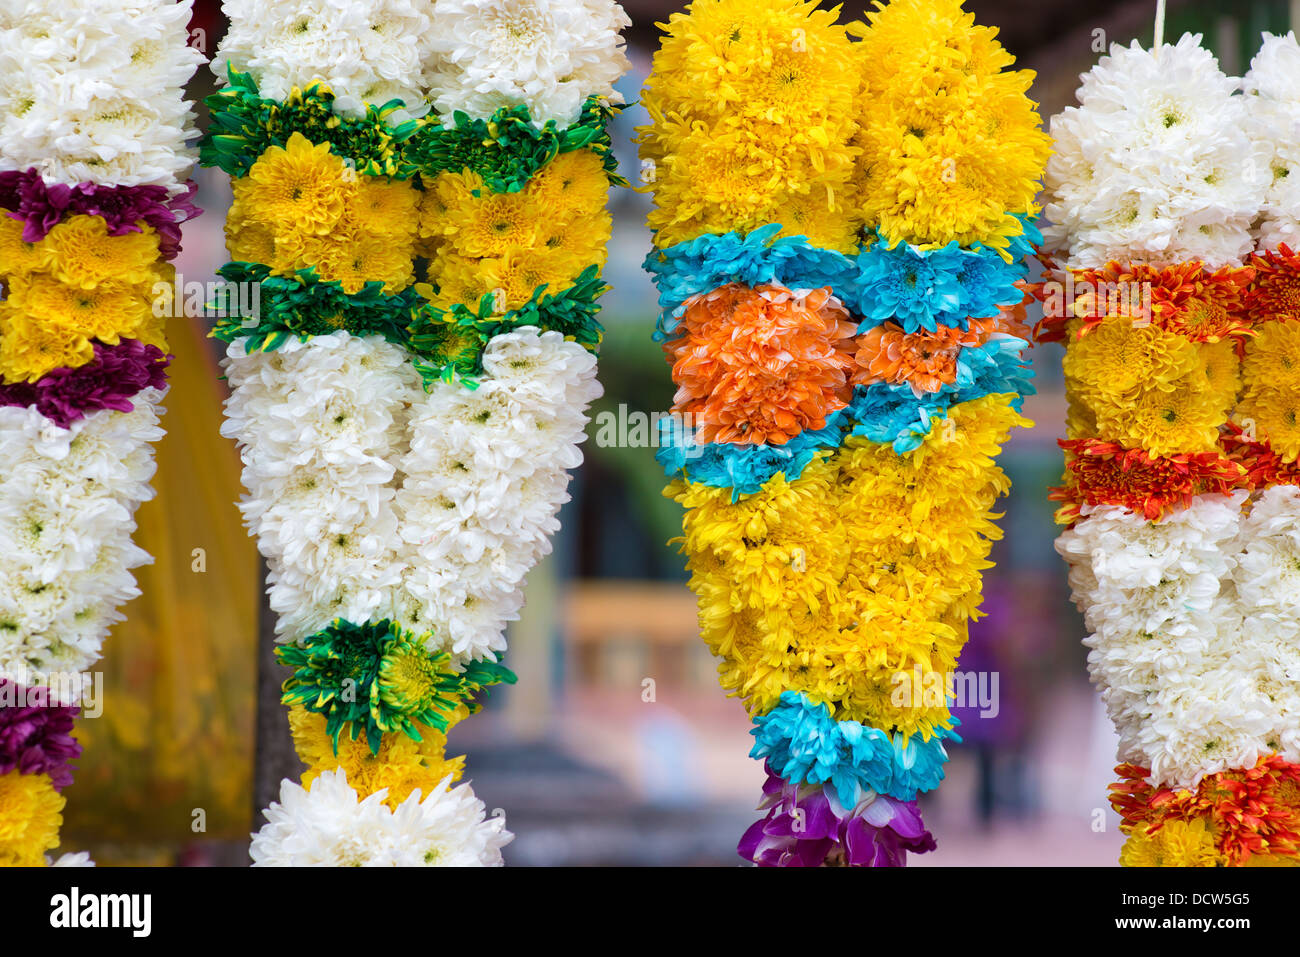 Indian flower garlands for sales during diwali festival - Stock Image